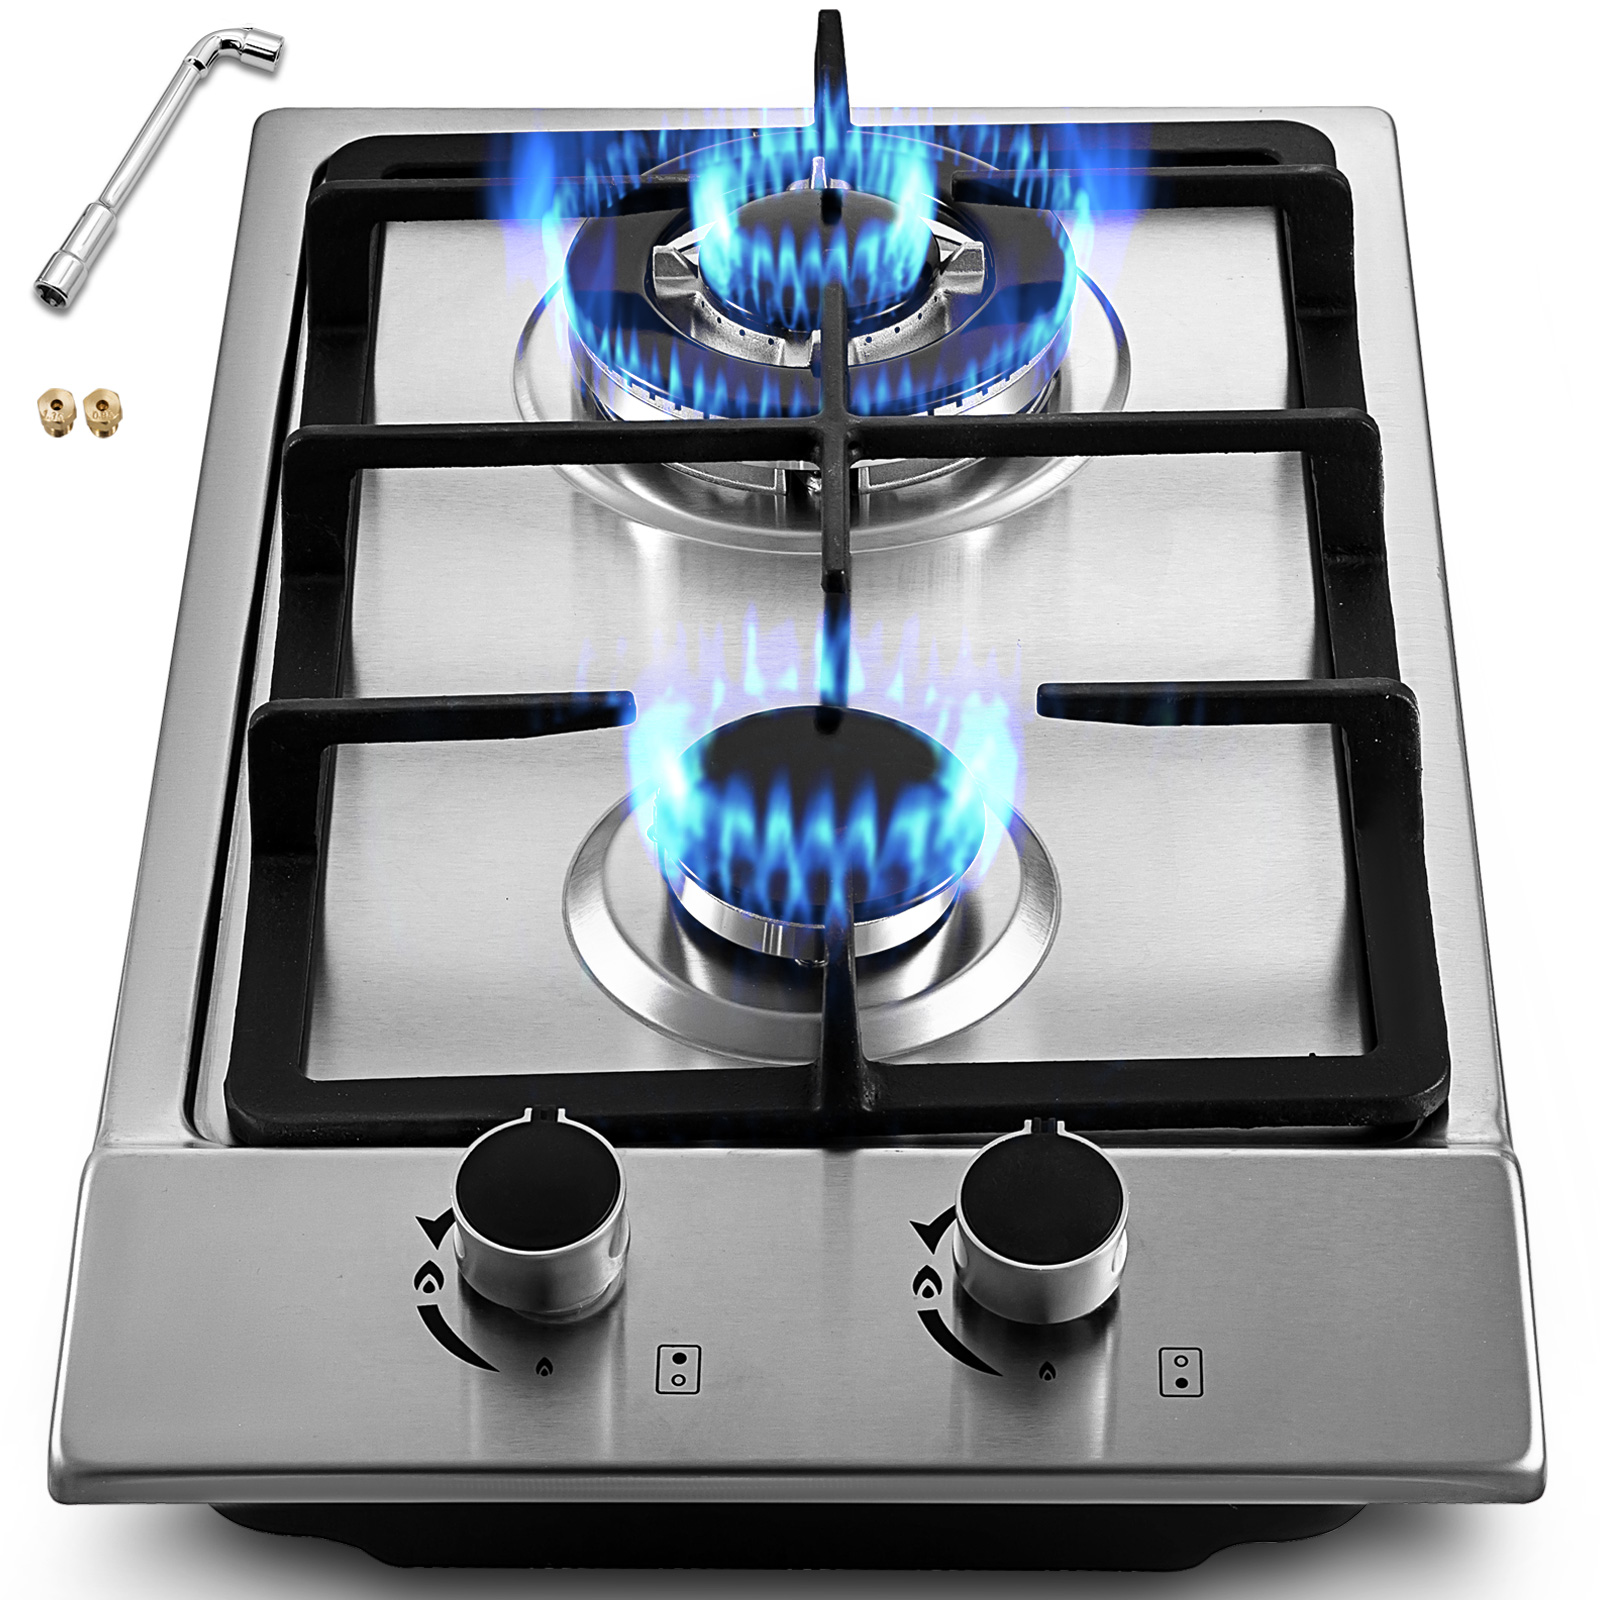 12 2 Burners Gas Cooktop Stainless Steel Easy Installat